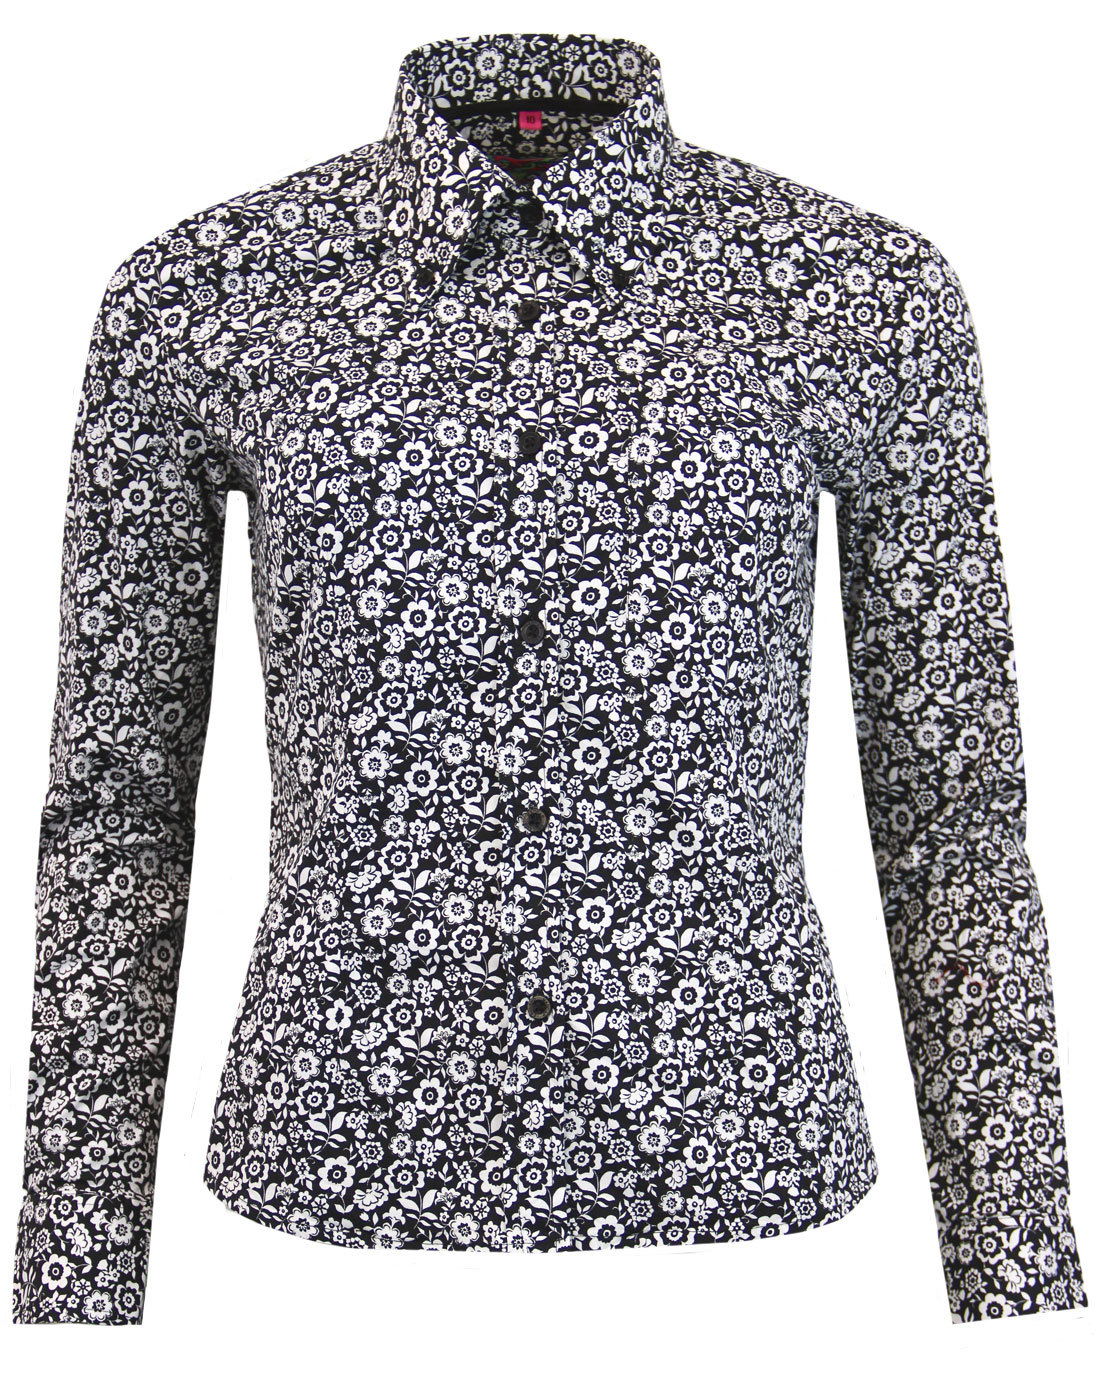 Wanderlust MADCAP ENGLAND Psychedelic Floral Shirt